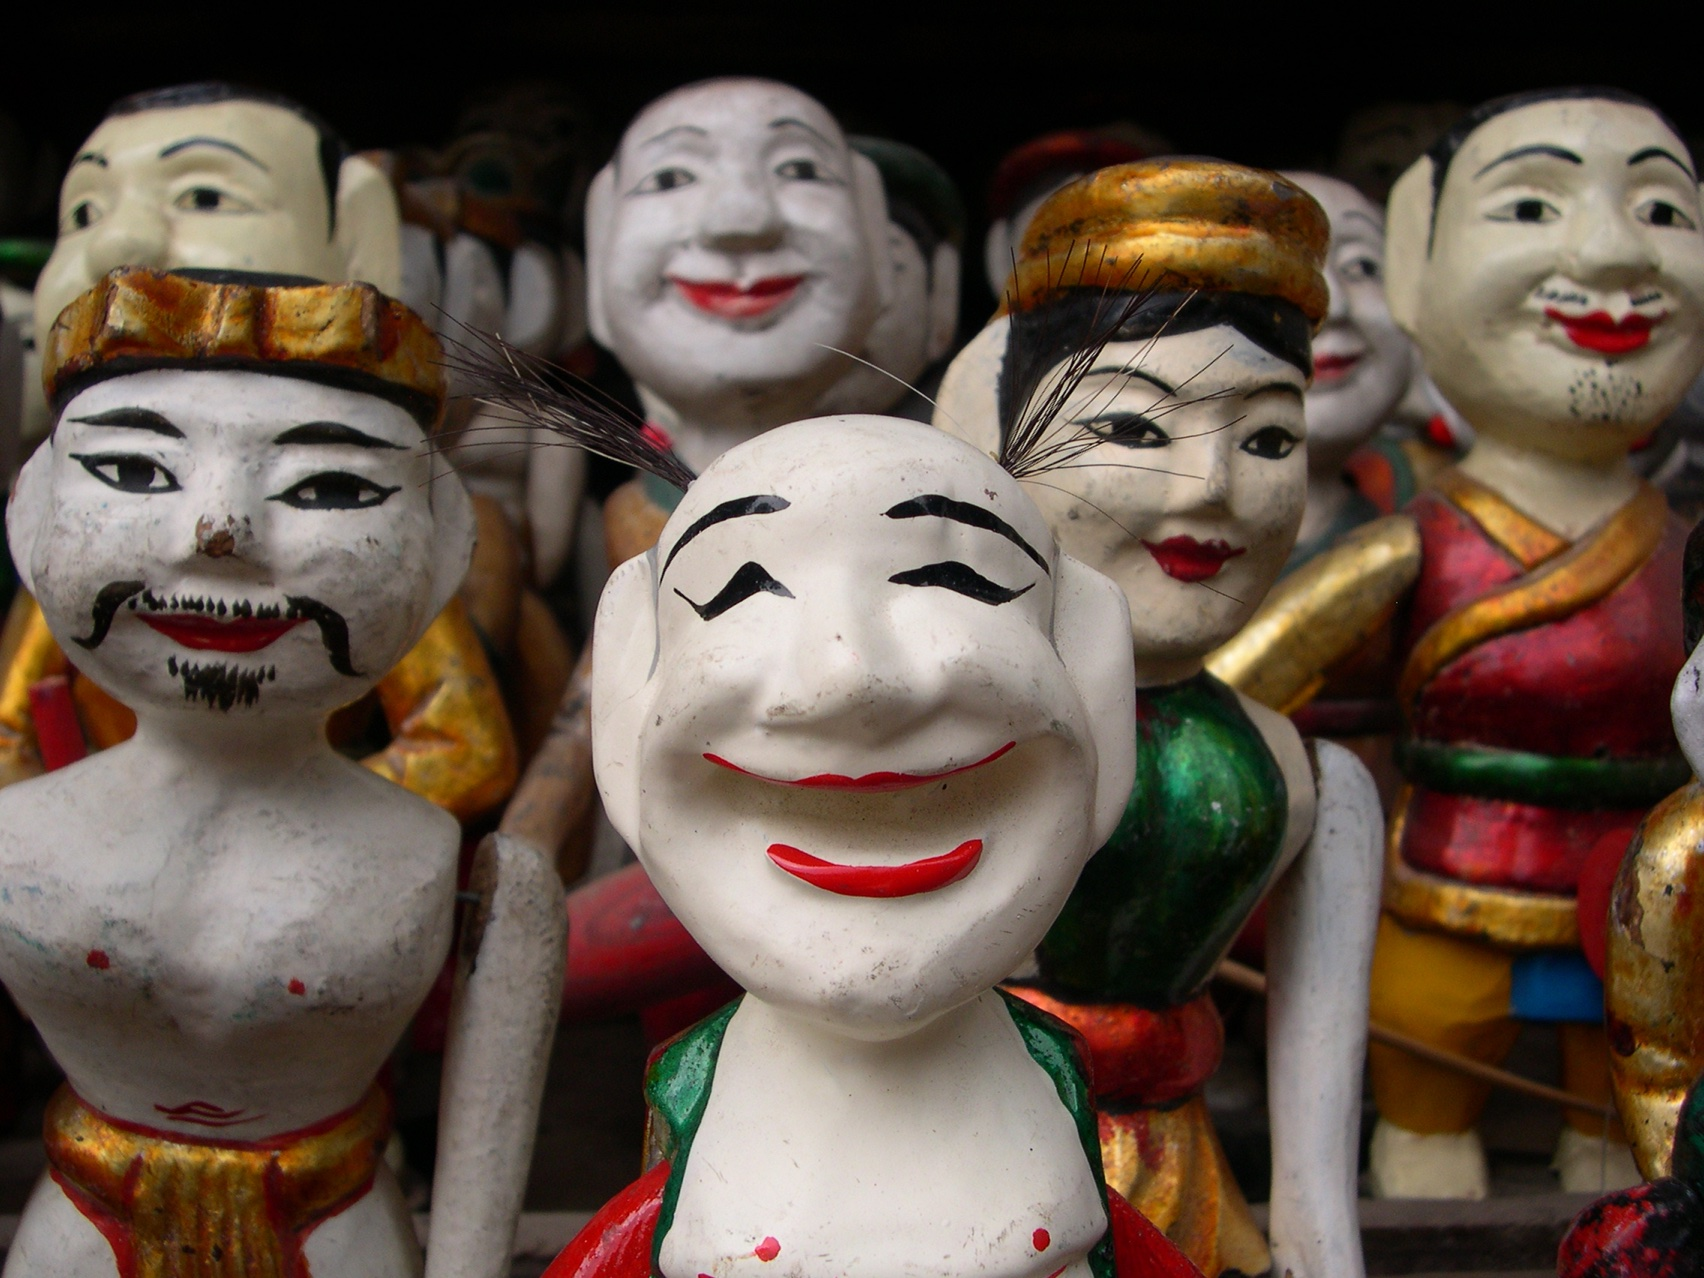 Water puppets in the Old Quarter of Hanoi, Vietnam. Photograph by Danny Fay. CC-BY-SA 2.5